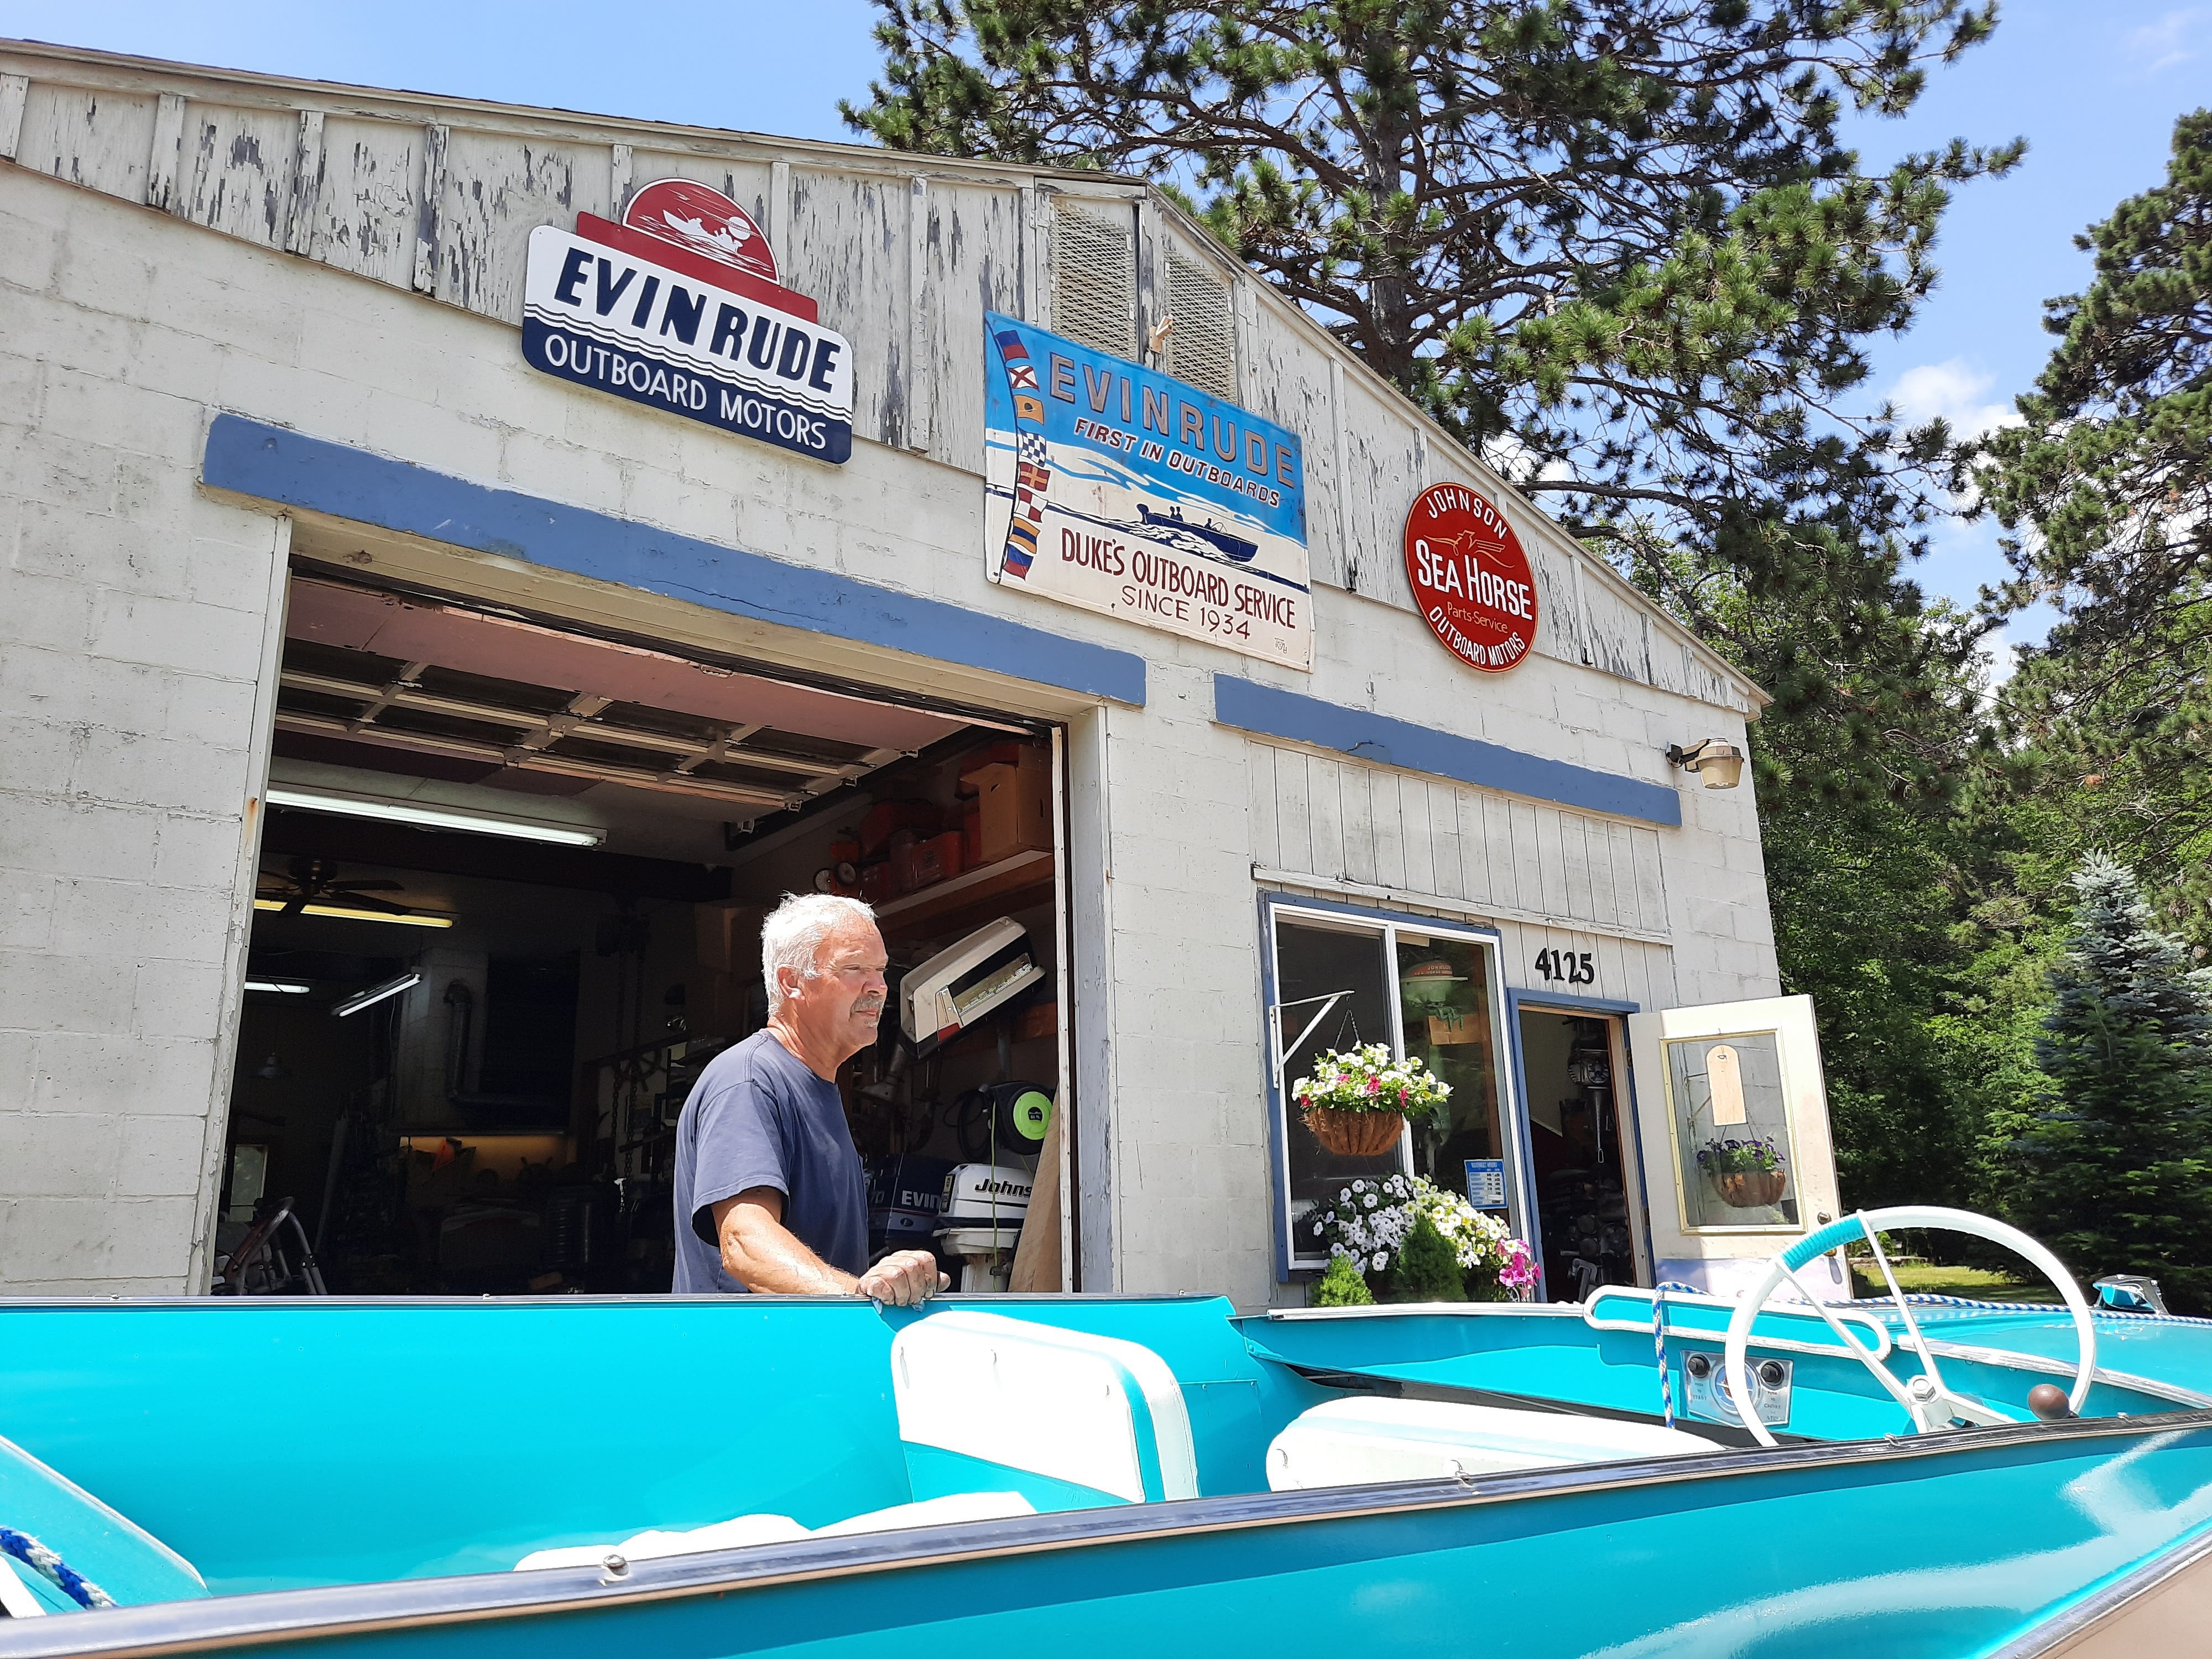 Wisconsin Based Evinrude Stops Boat Motor Production Surprising Local Repair Shops Wxpr